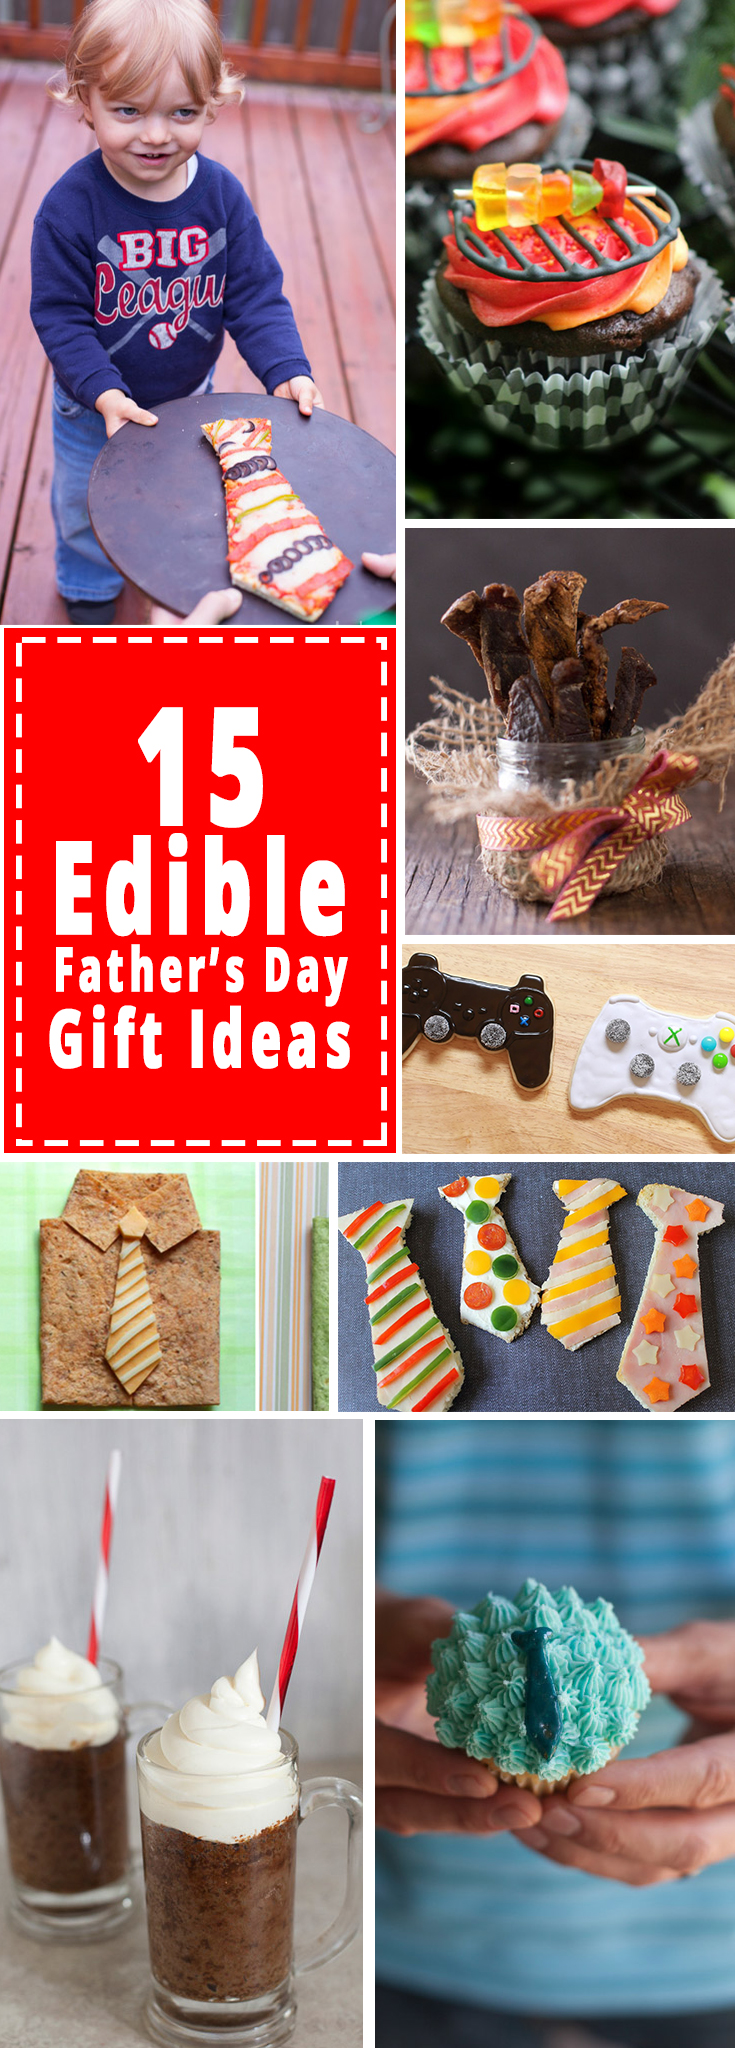 15 creative edible Father's Day gifts that kids can make for dad!